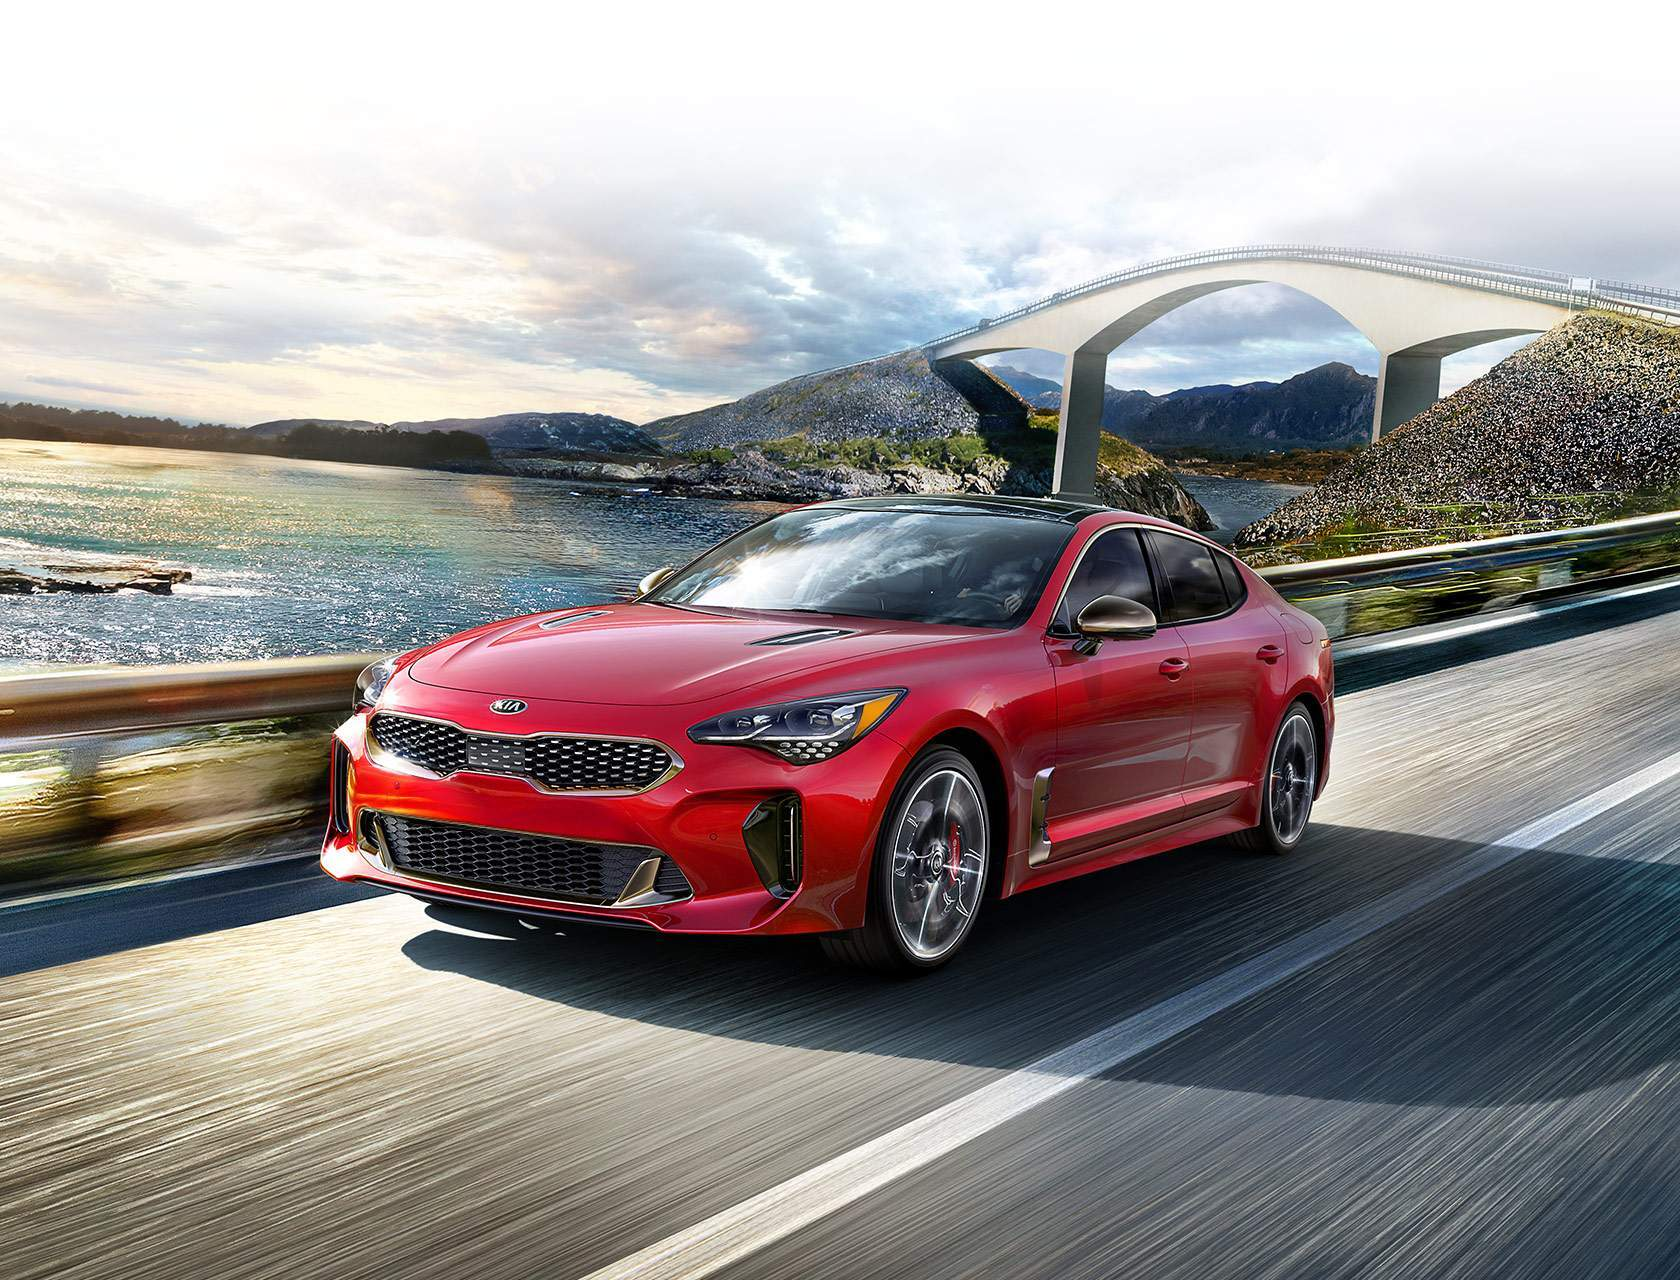 2018 Kia Stinger in Naples, FL